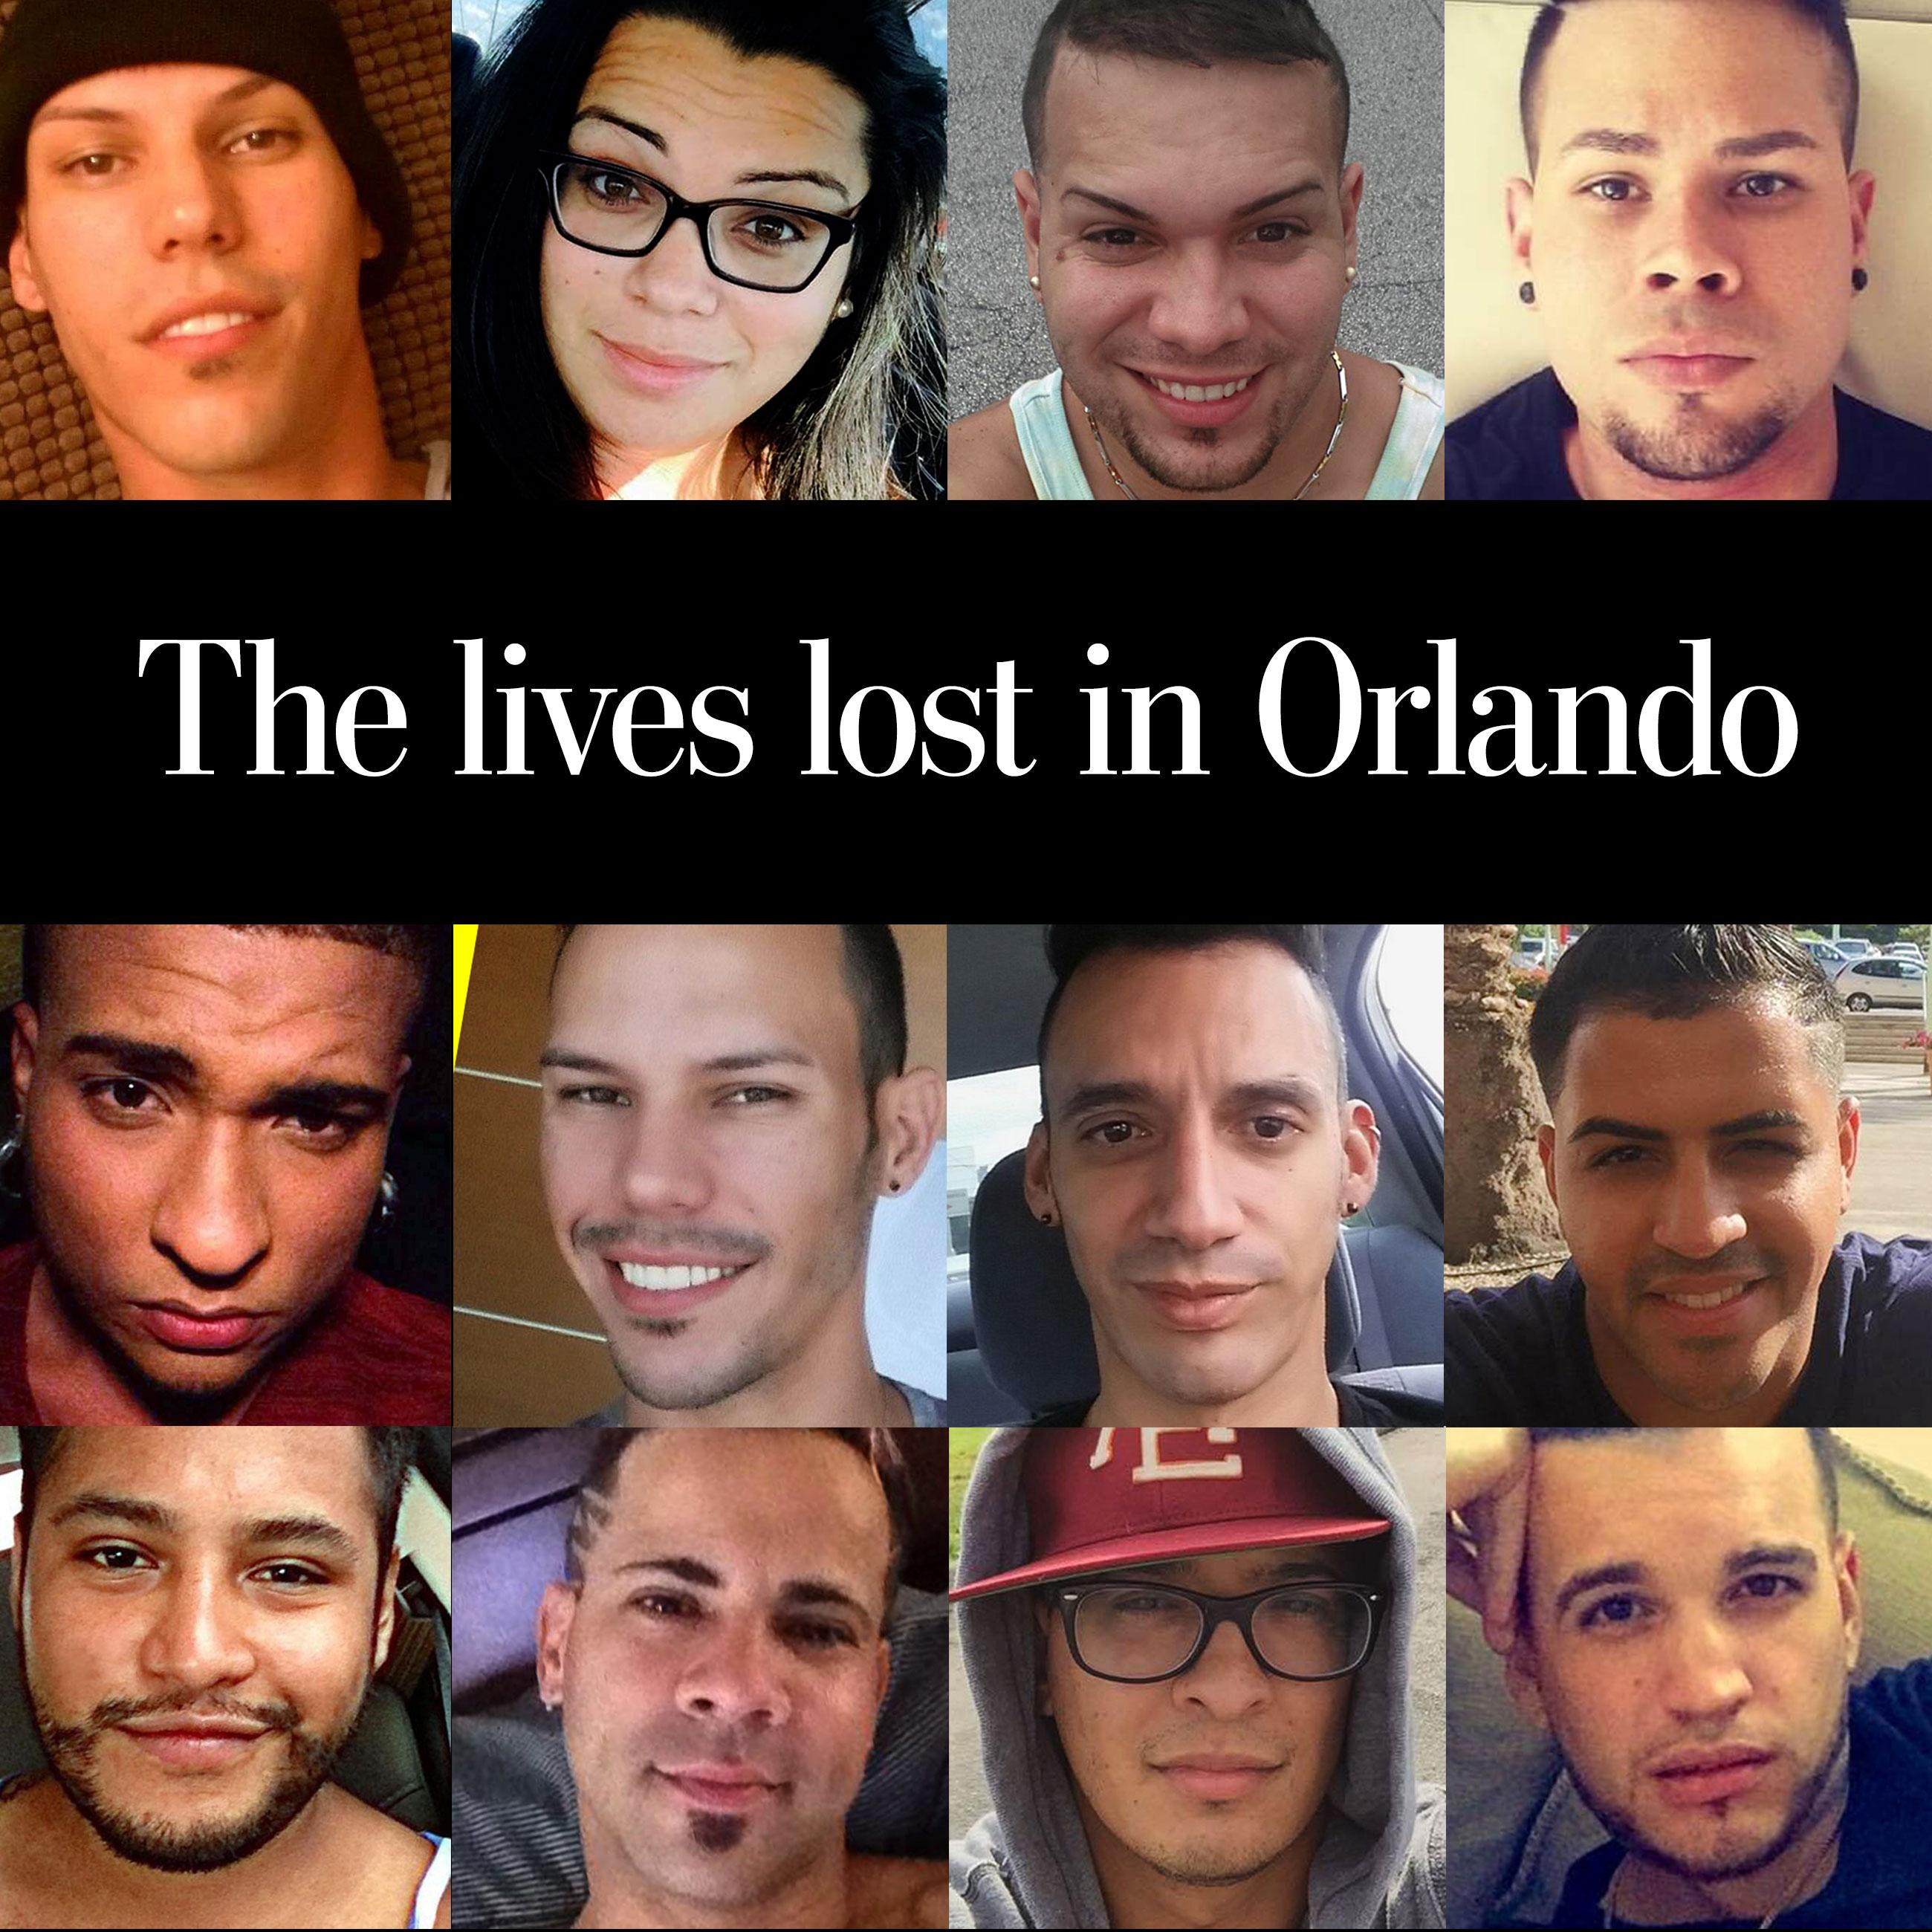 The lives lost in Orlando